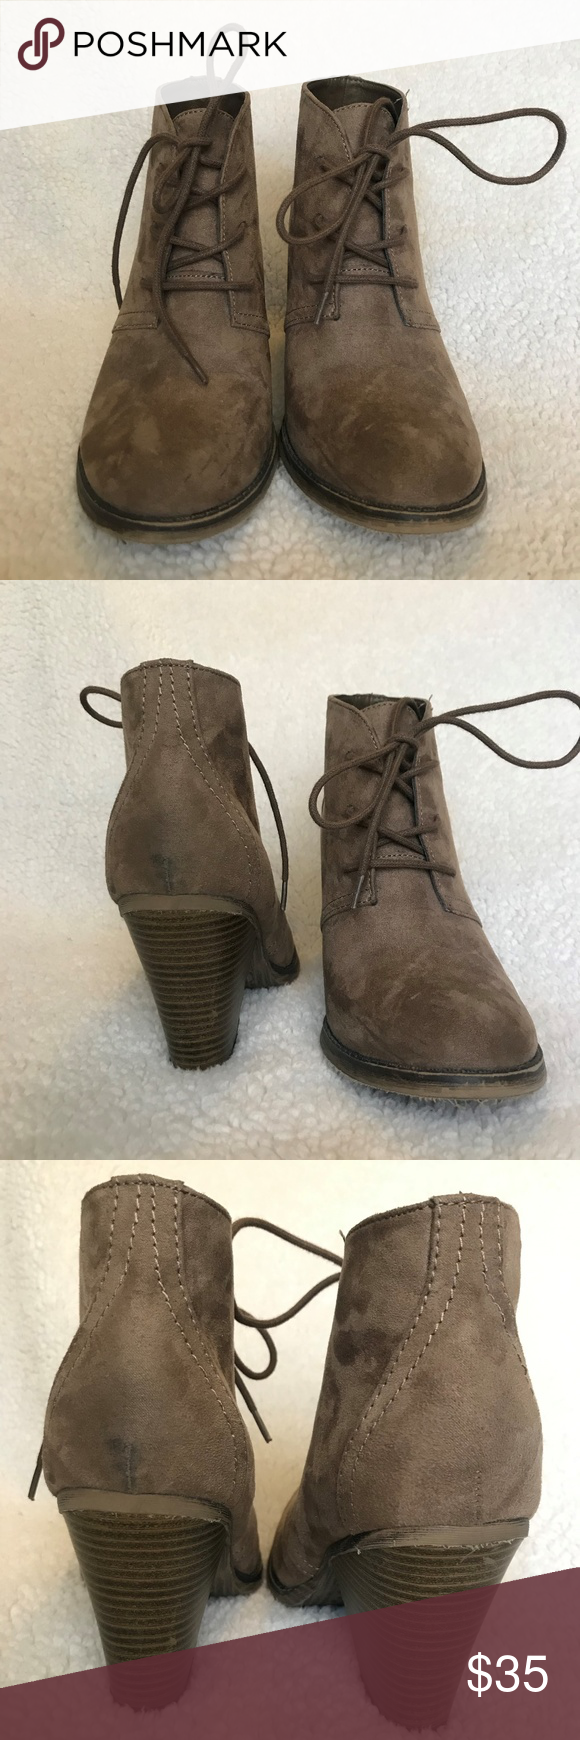 MIA fall ankle boots These MIA ankle boots are perfect for a Saturday downtown with your favorite poncho or duster cardigan, skinny jeans, and an oversized hat. Ankle boots will be the perfect touch for all of your Instagram worthy outfits. The shoes are a tan faux suede with a heel about 3 inches tall featuring a wood-like finish. MIA Shoes Ankle Boots & Booties #skinnyjeansandankleboots